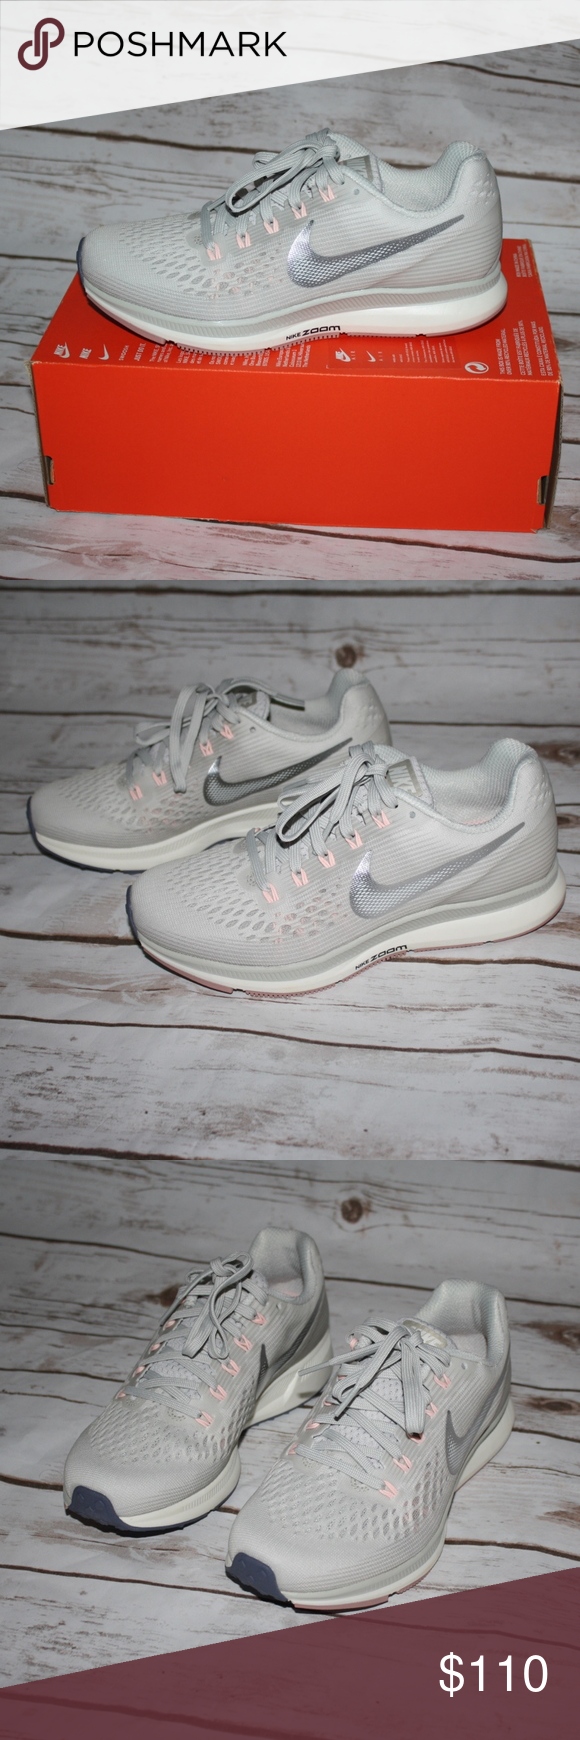 492767bcac69 New Nike Air Zoom Pegasus 34 Running Shoes ✨Brand New With Box Without Lid✨  💫✨Price is Firm✨💫 Built for beginners and experienced runners